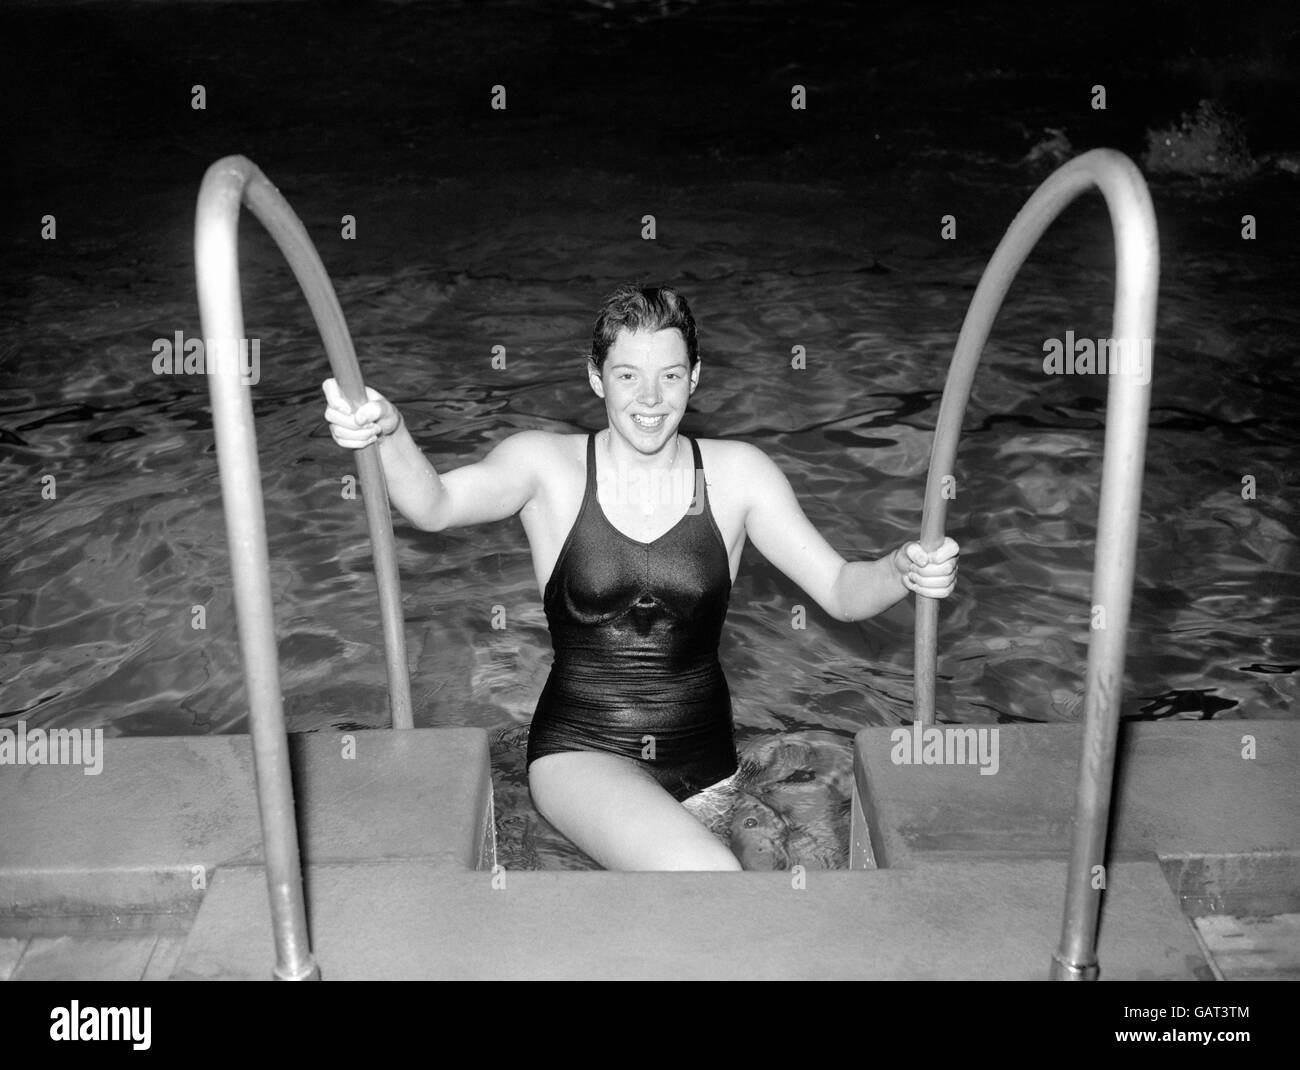 Swimming - Melbourne Olympic Games 1956 - Stock Image